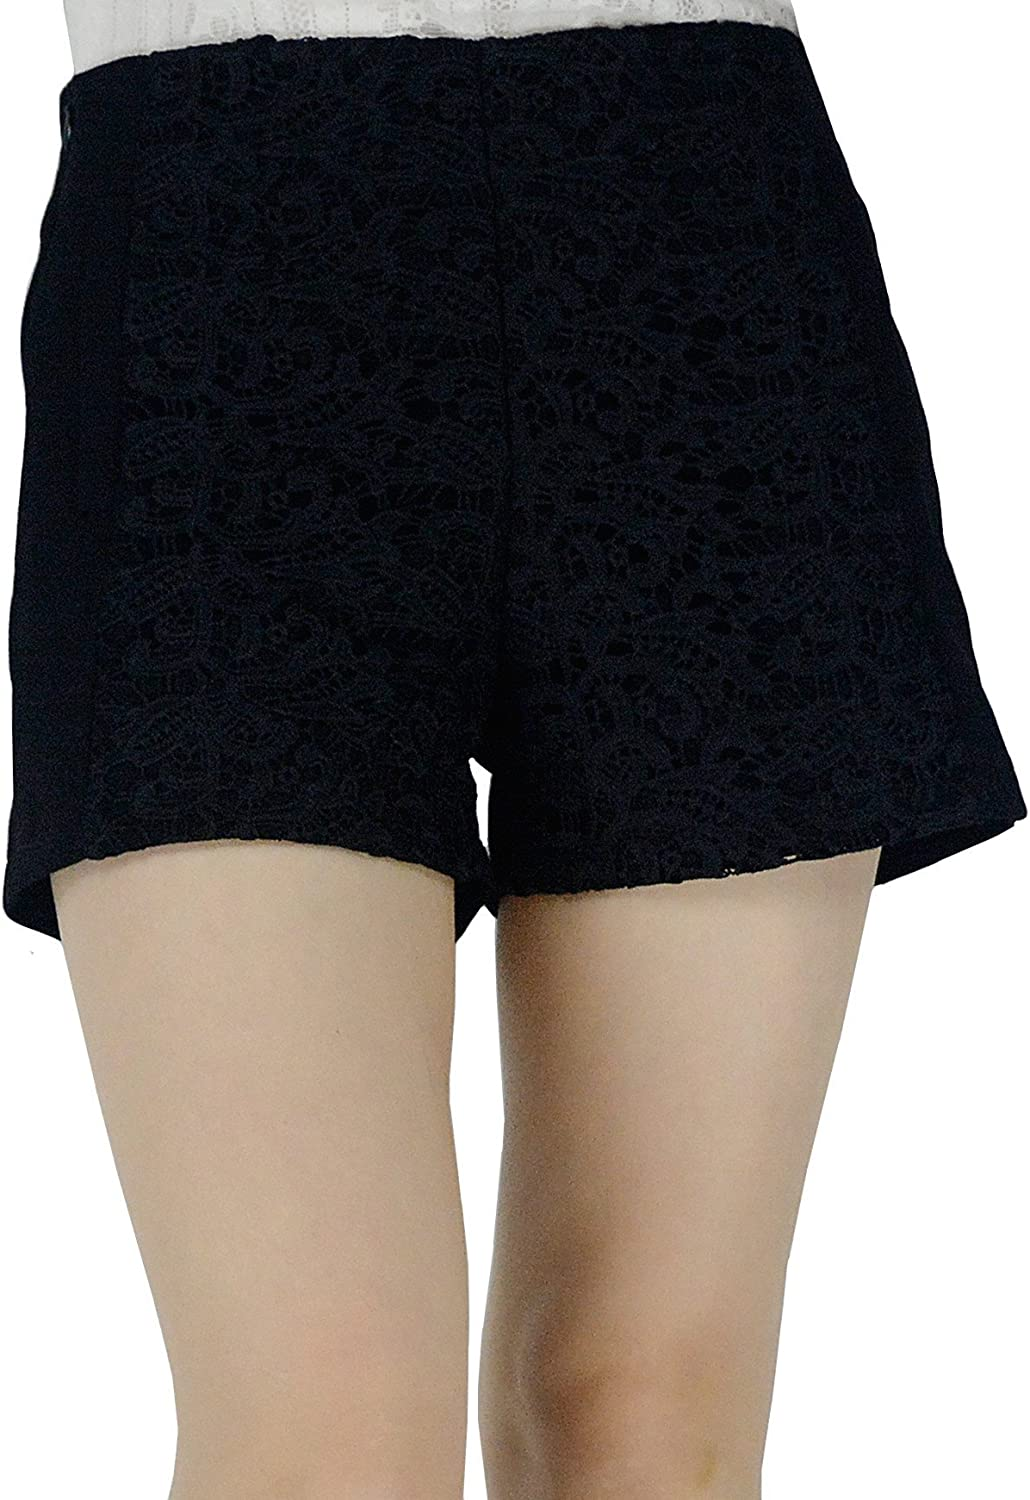 YSJ Women's Embroidered Floral Lace Zipper Closure Mini Shorts 5 Sizes (10, Black)